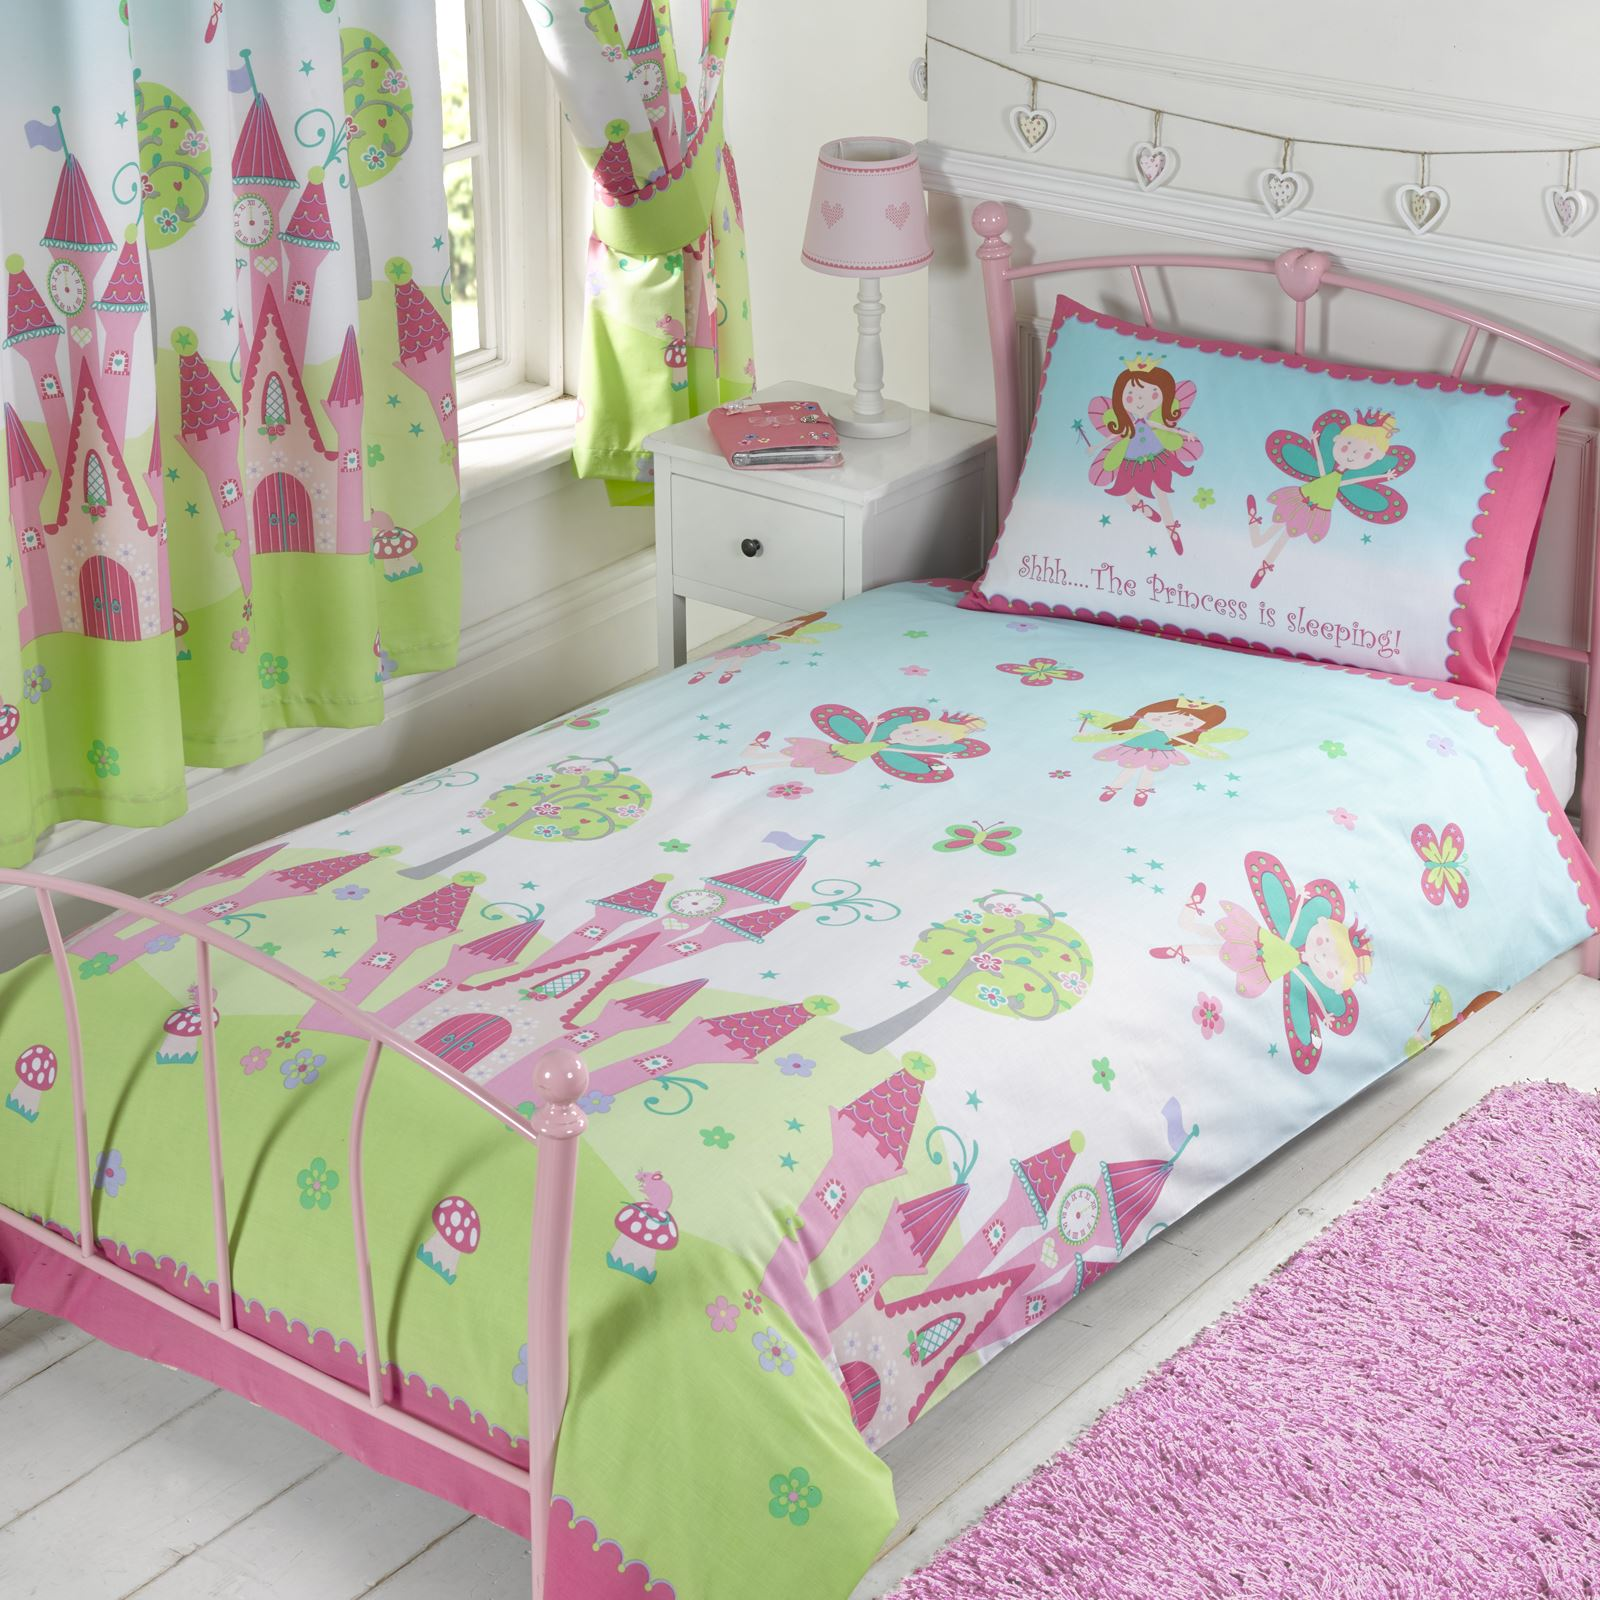 Details about PRINCESS IS SLEEPING BEDROOM - BEDDING AND CURTAINS AVAILABLE  - SINGLE DOUBLE